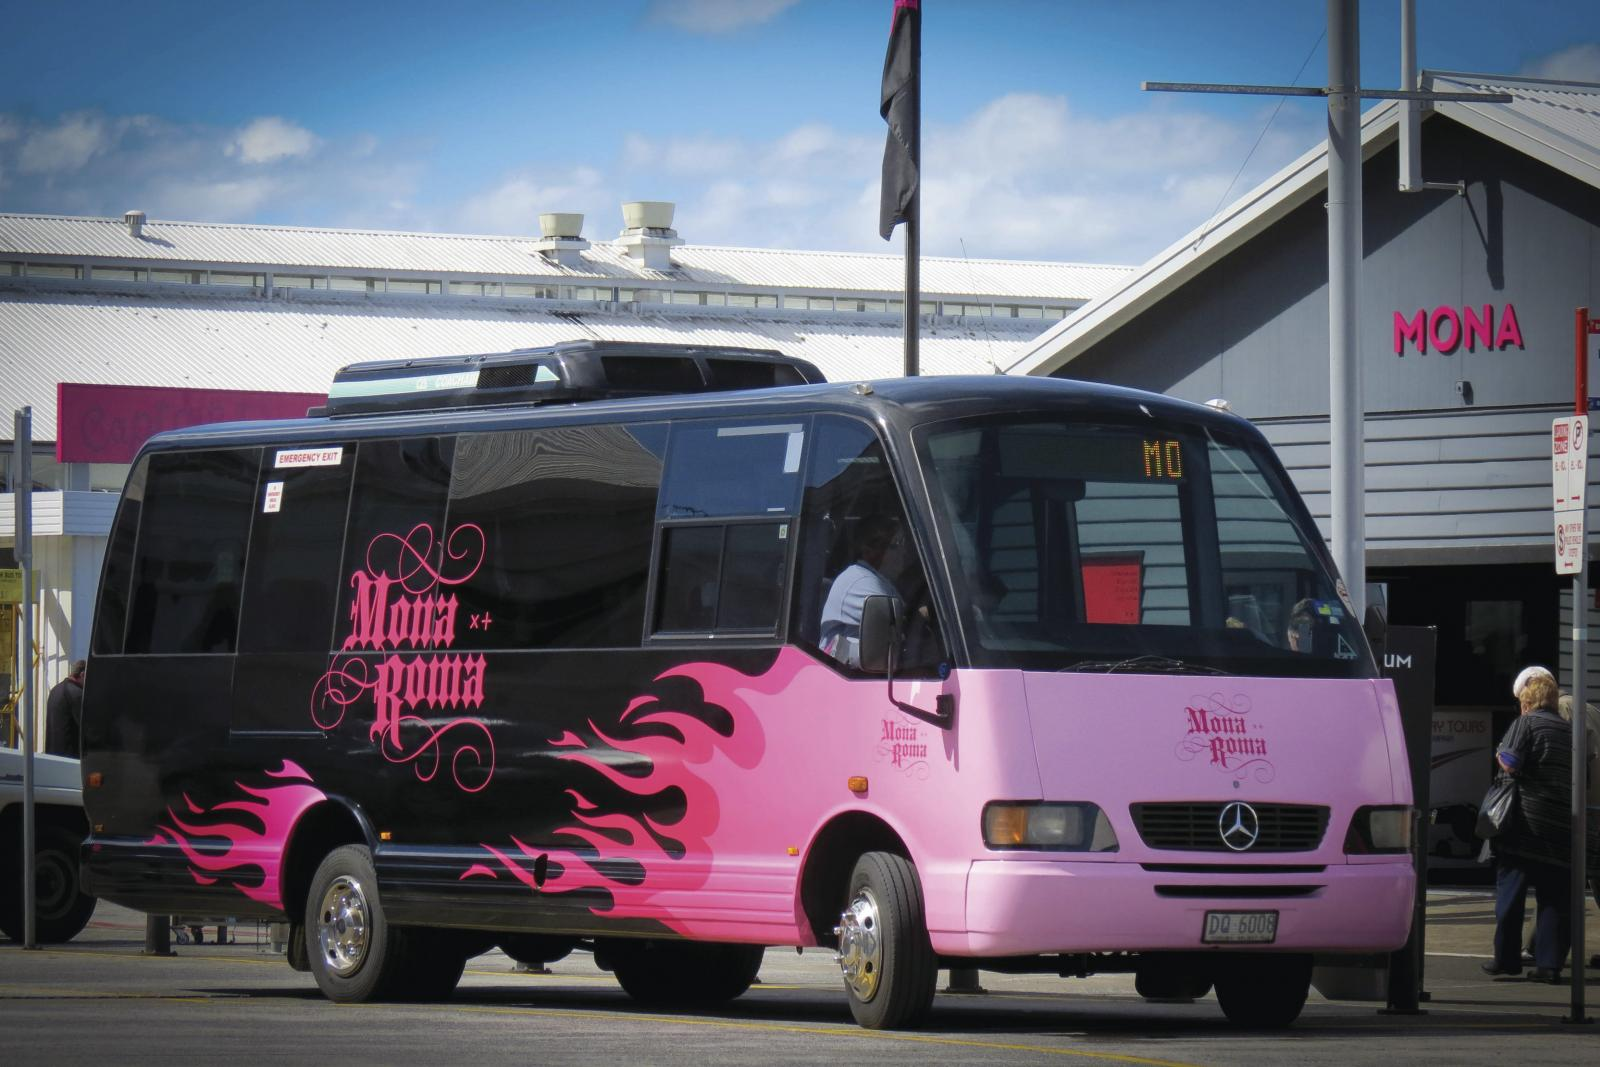 Taking the Bus to MONA from the Hobart Waterfront